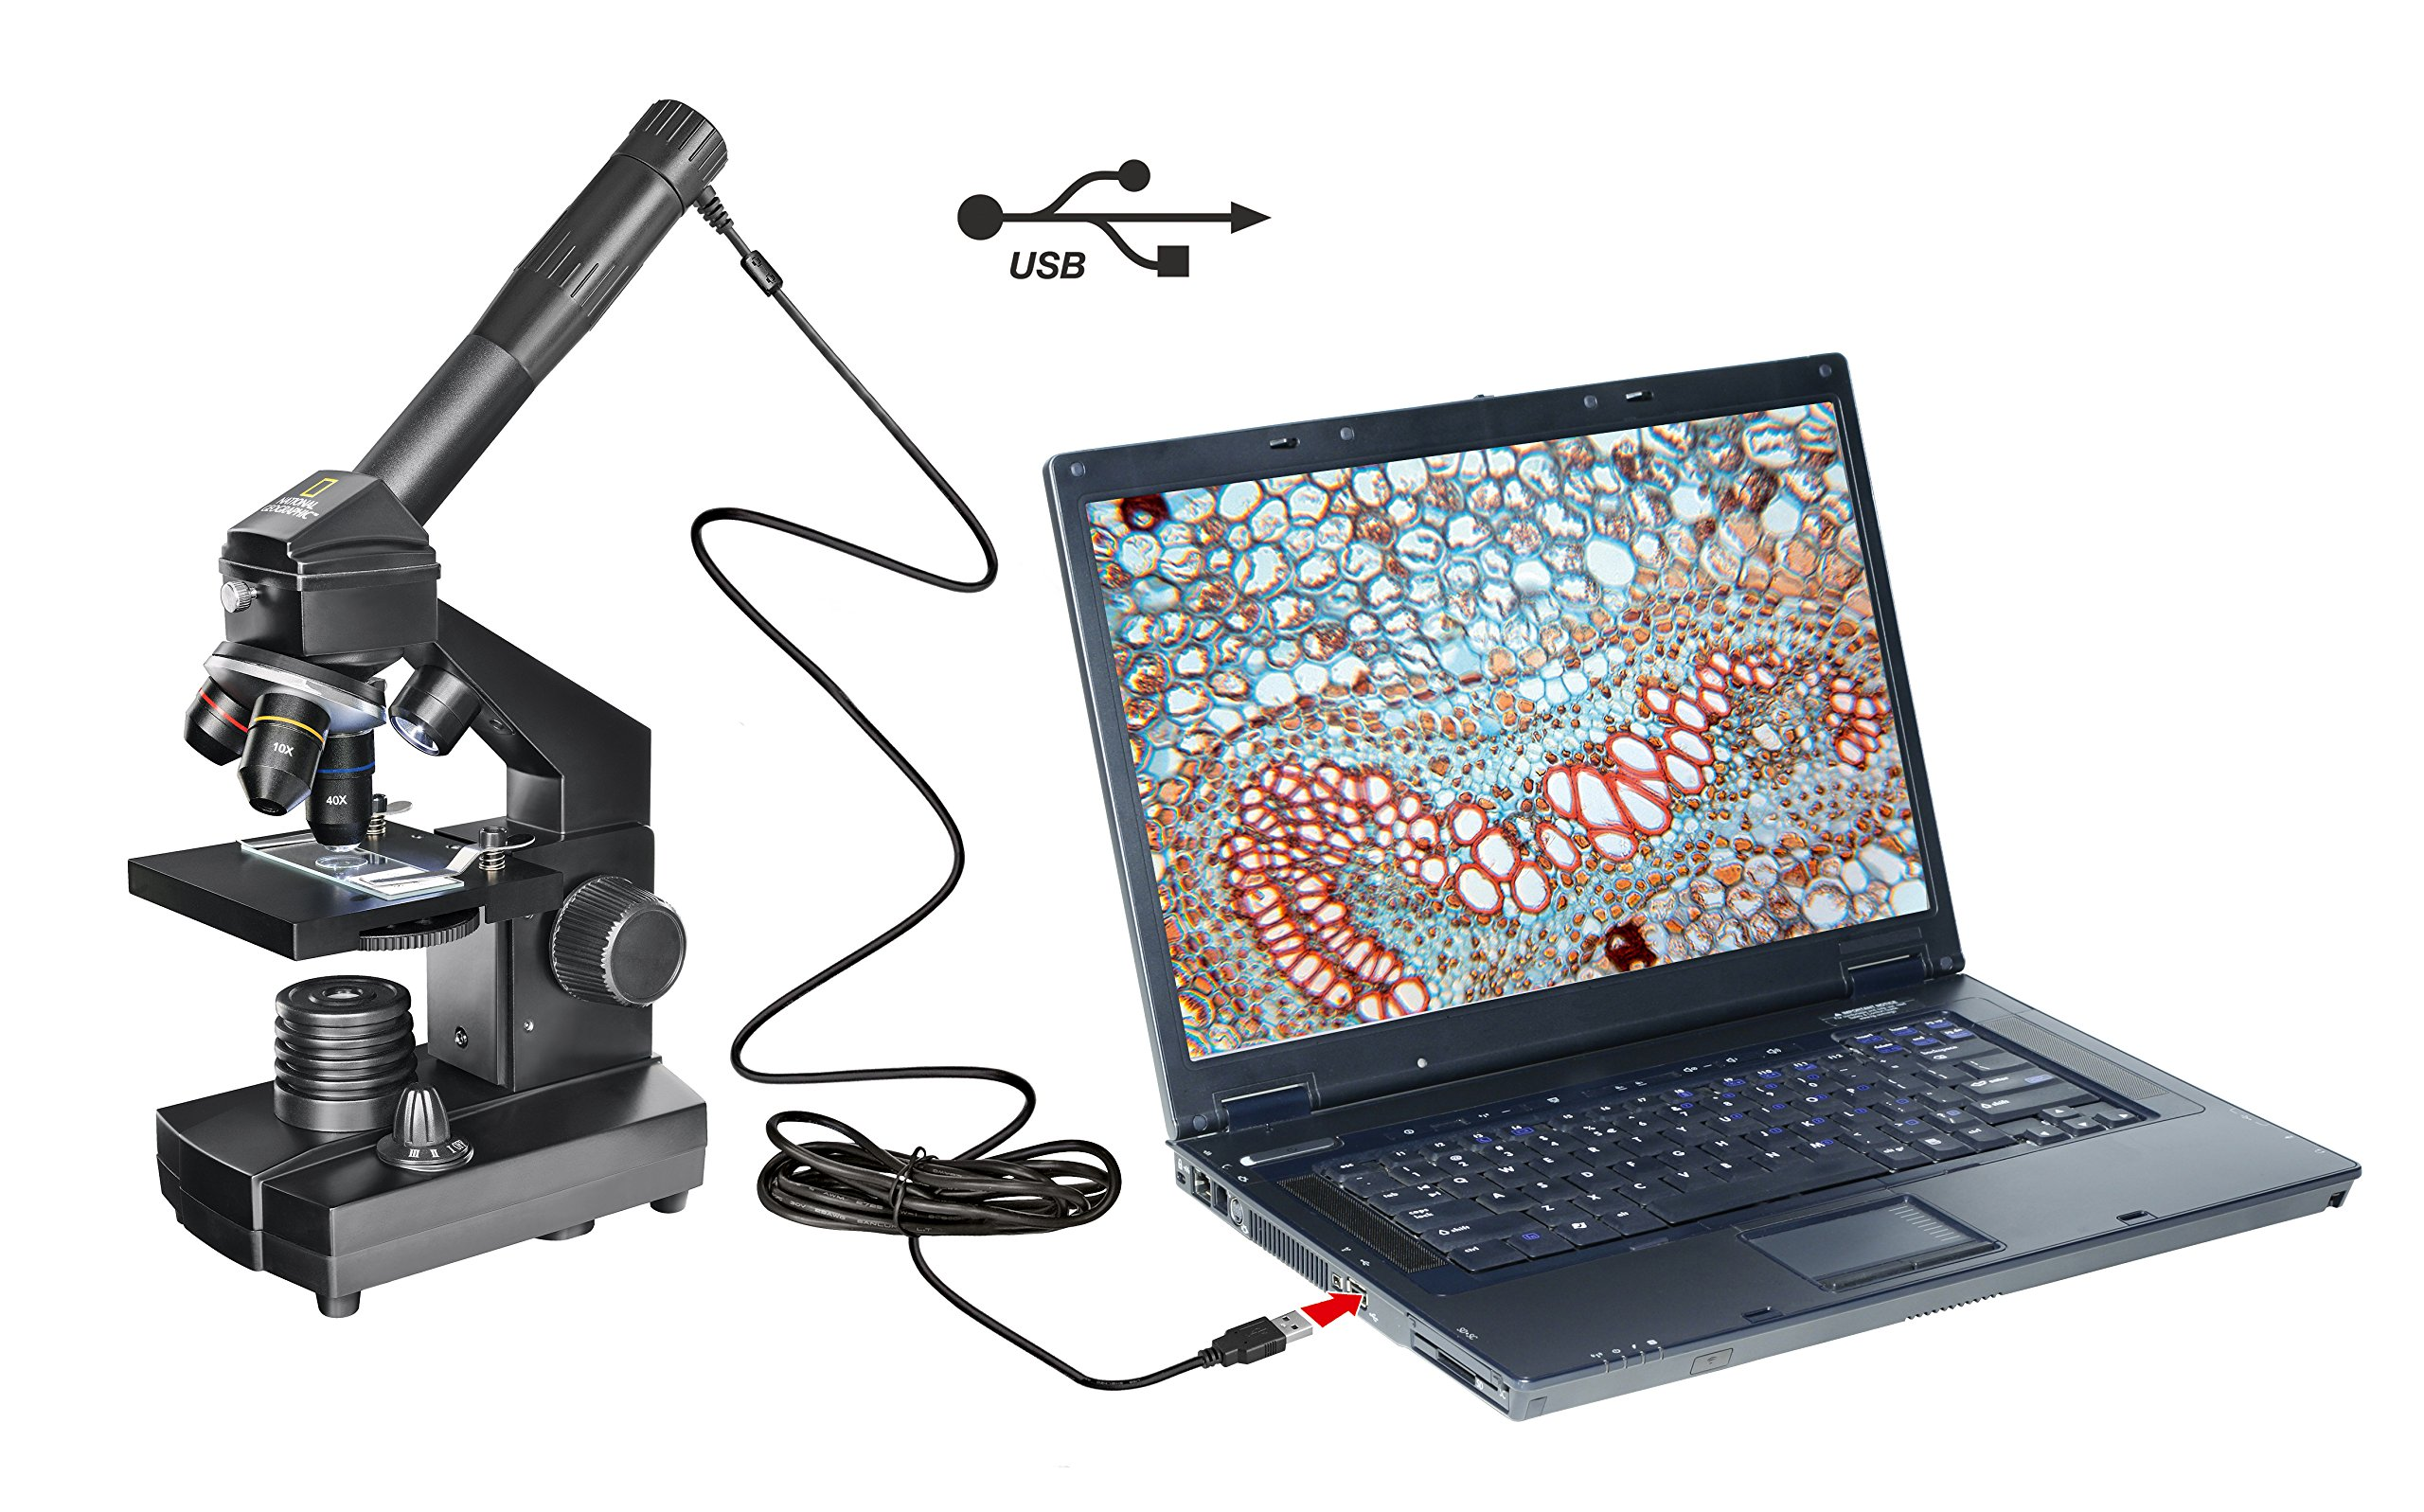 National Geographic Microscope 40x-1024x USB with case